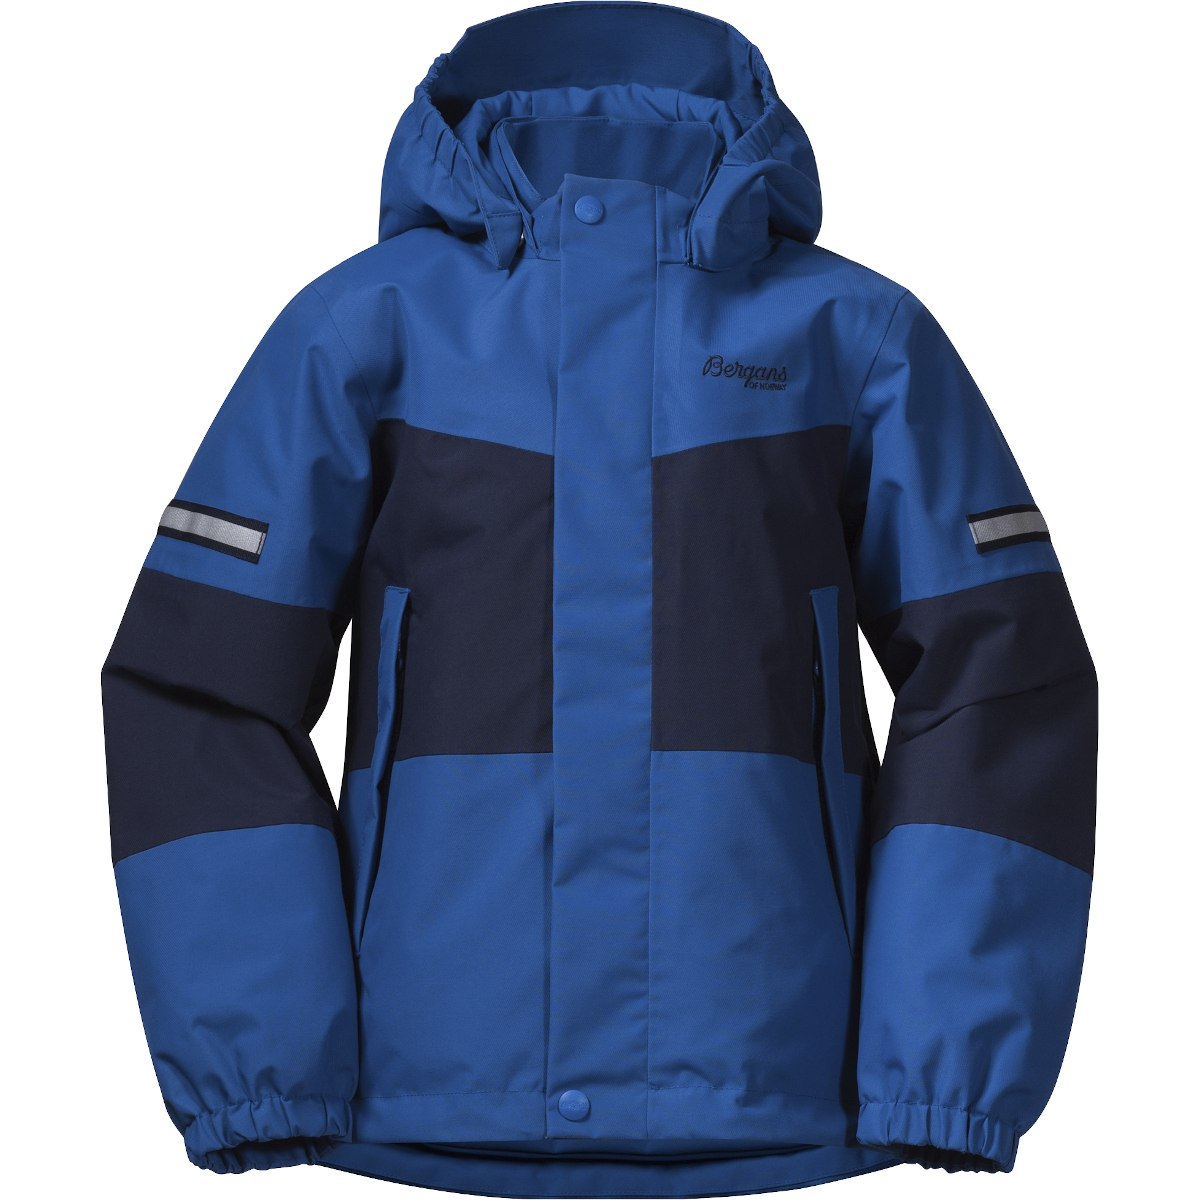 Bergans Lilletind Insulated Kids Jacket - classic blue/navy